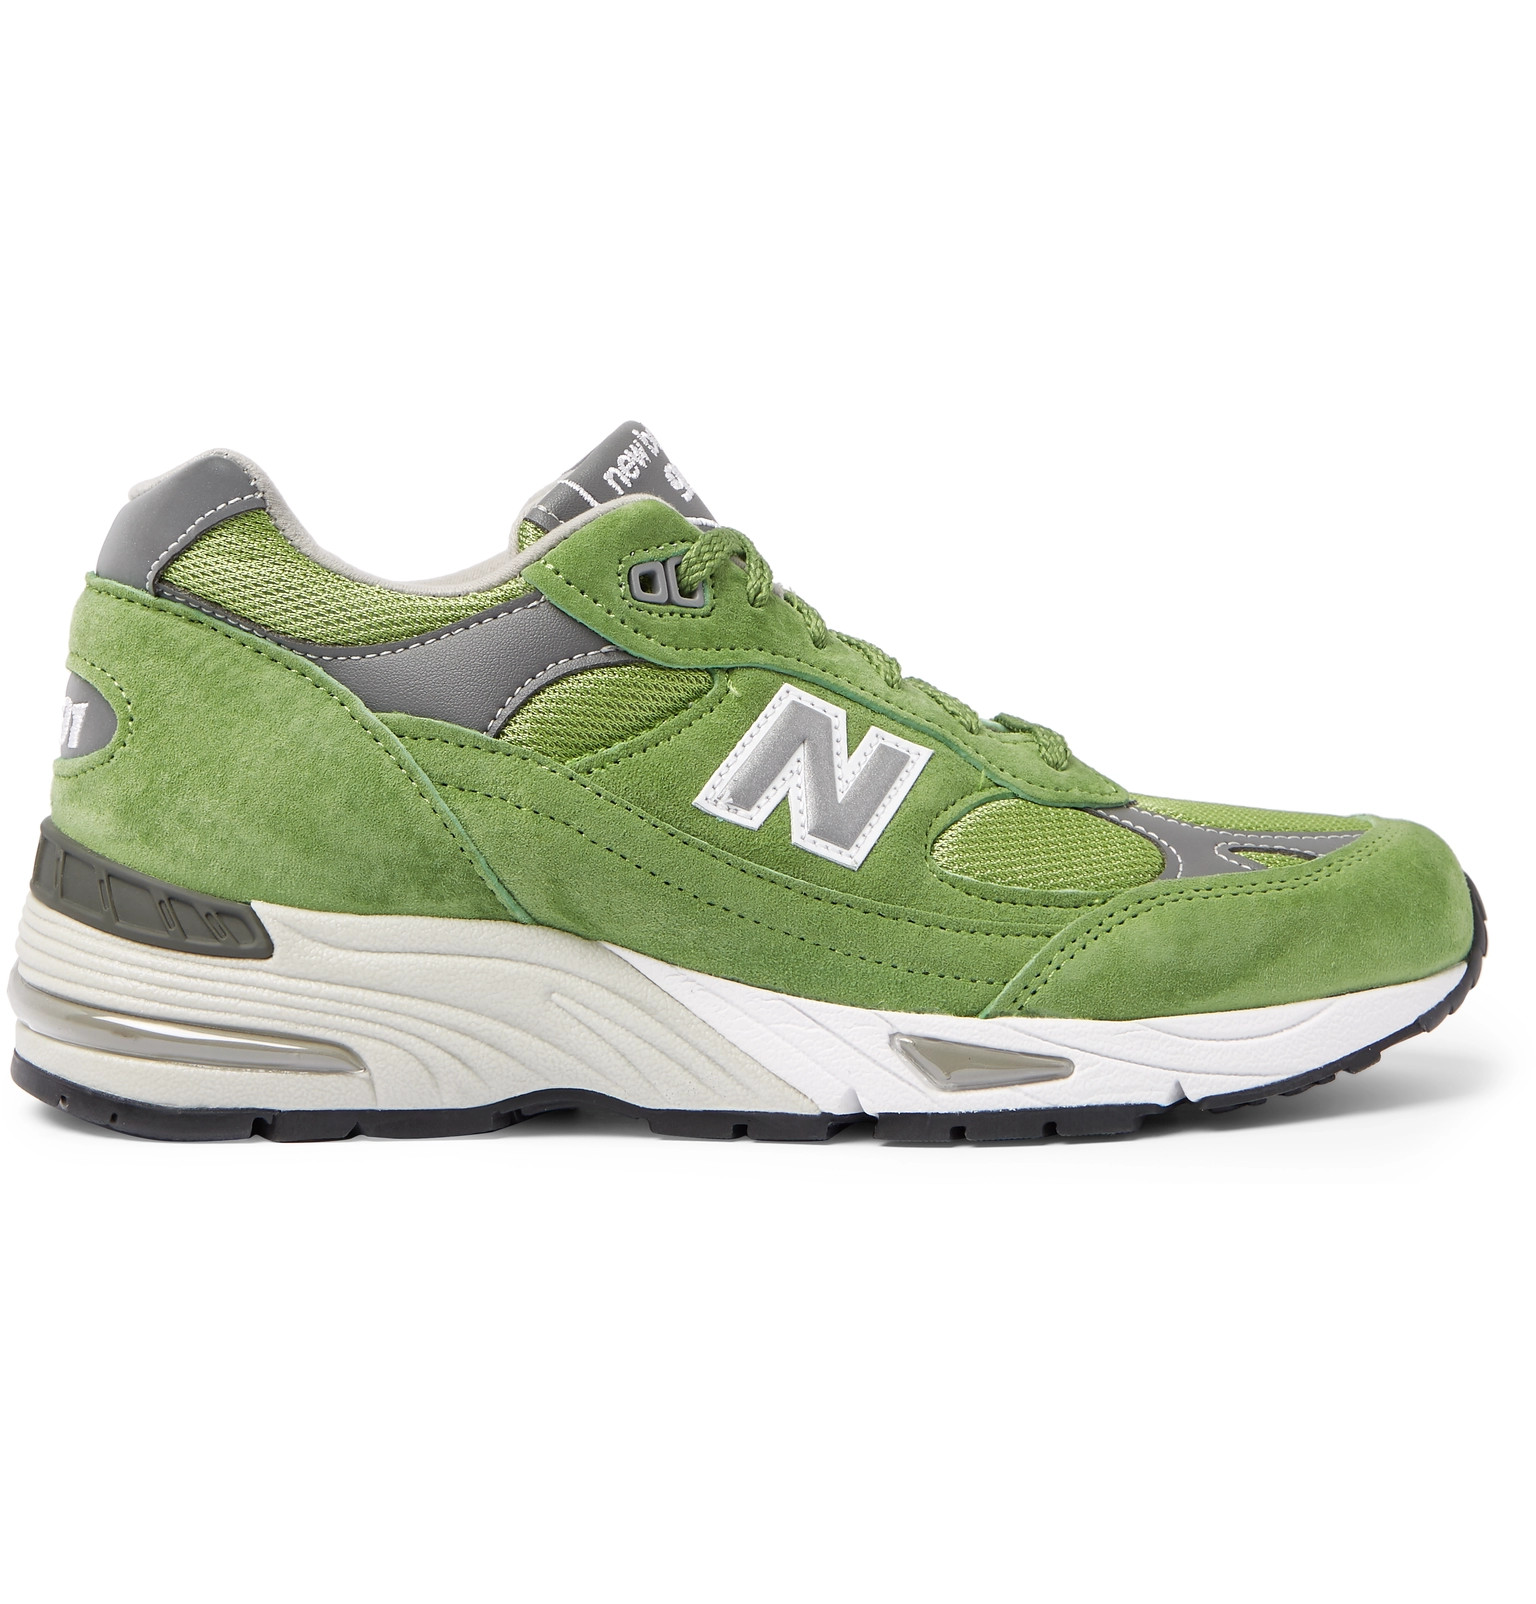 pas mal 897f8 066cd New Balance - 991 Suede, Mesh and Leather Sneakers